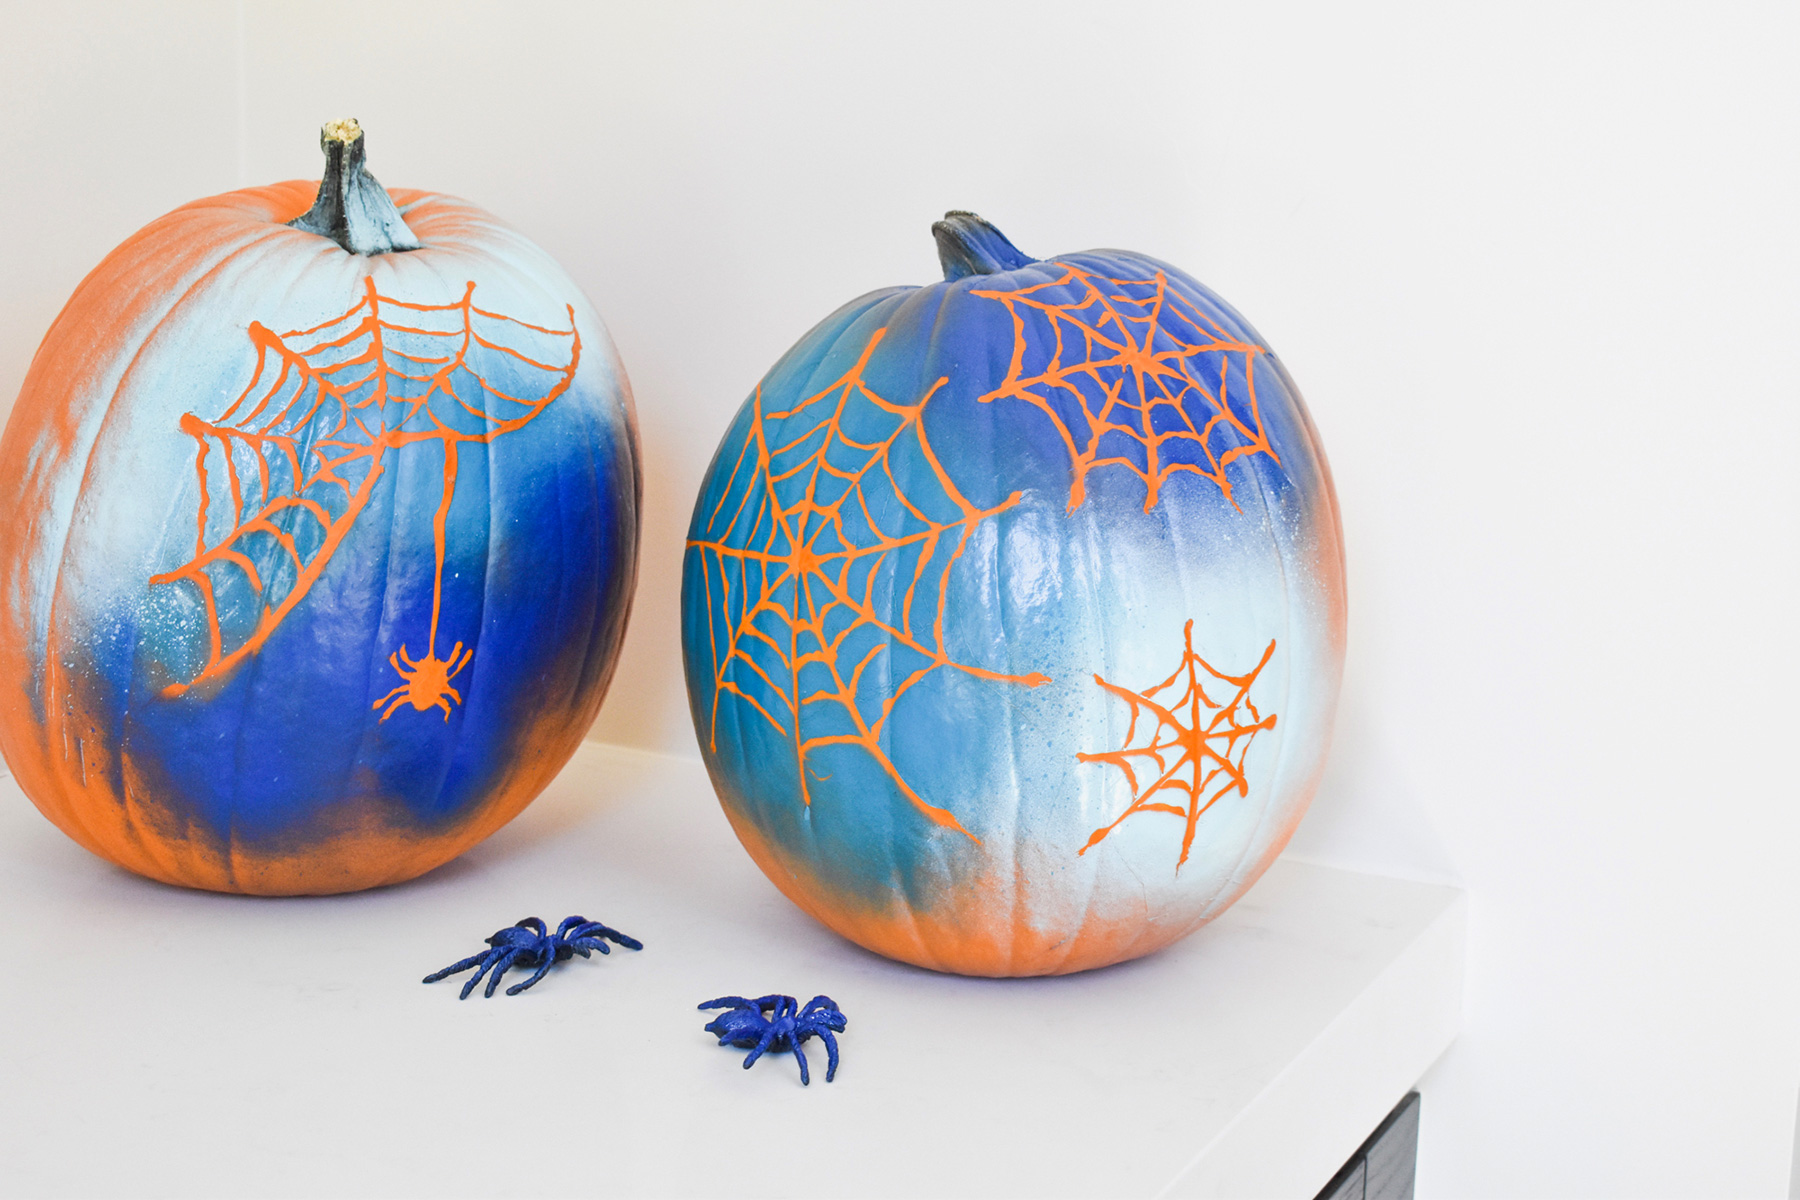 No-carve pumpkin ideas - Spiderweb Pumpkins